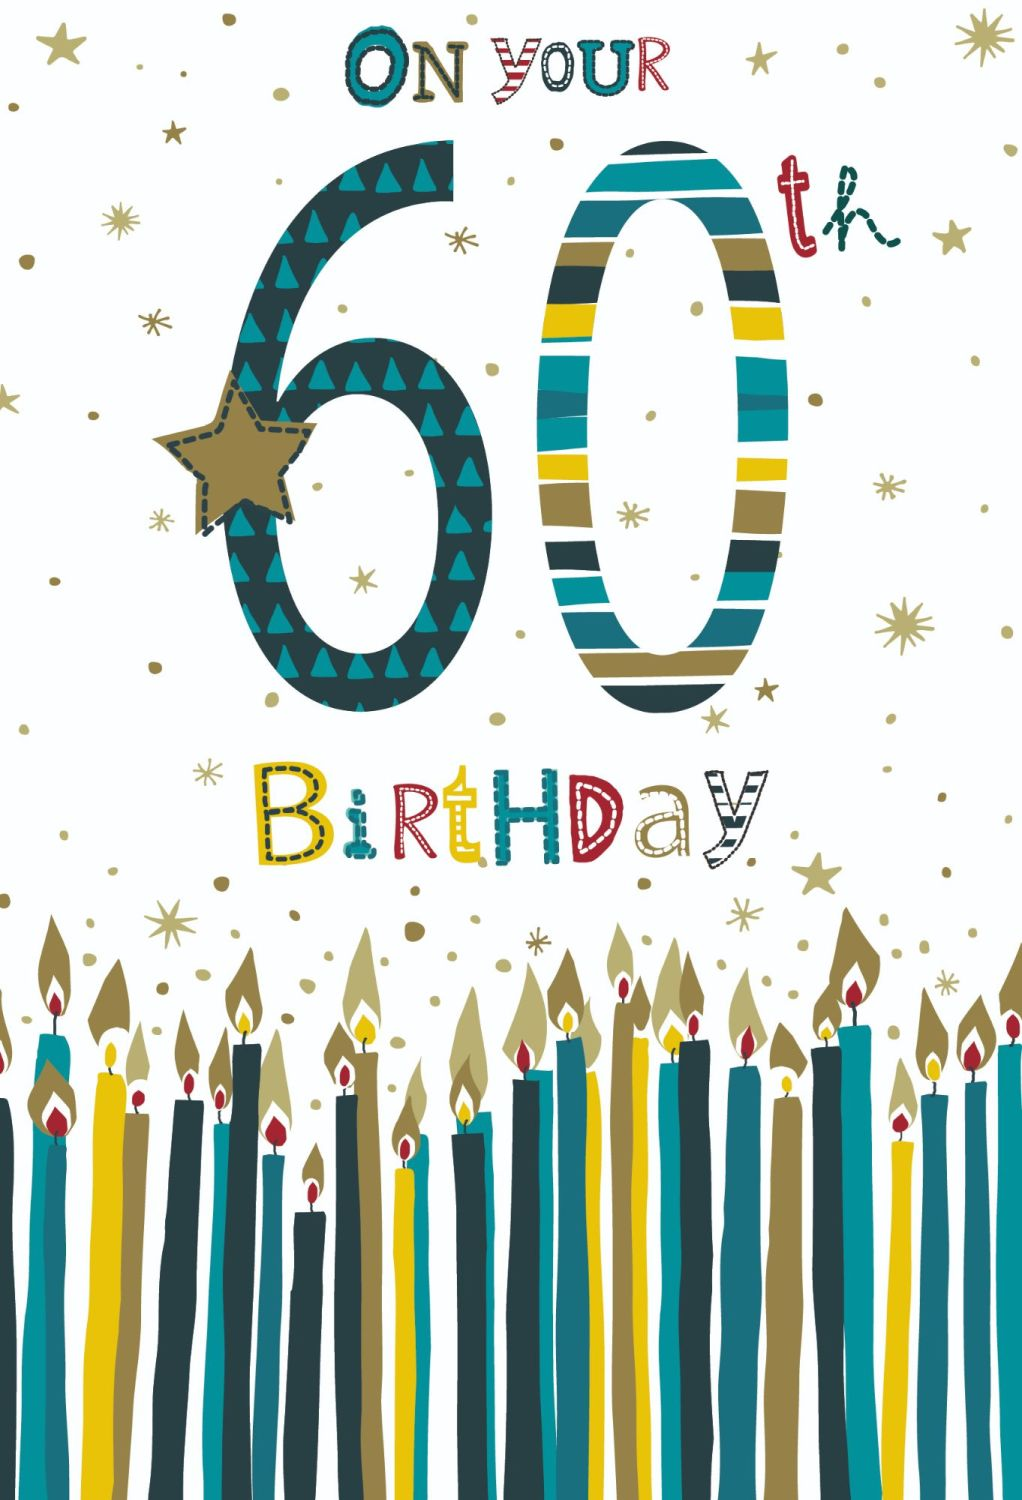 60th Birthday Cards For Him - ON Your 60th BIRTHDAY - Birthday CANDLES CARD